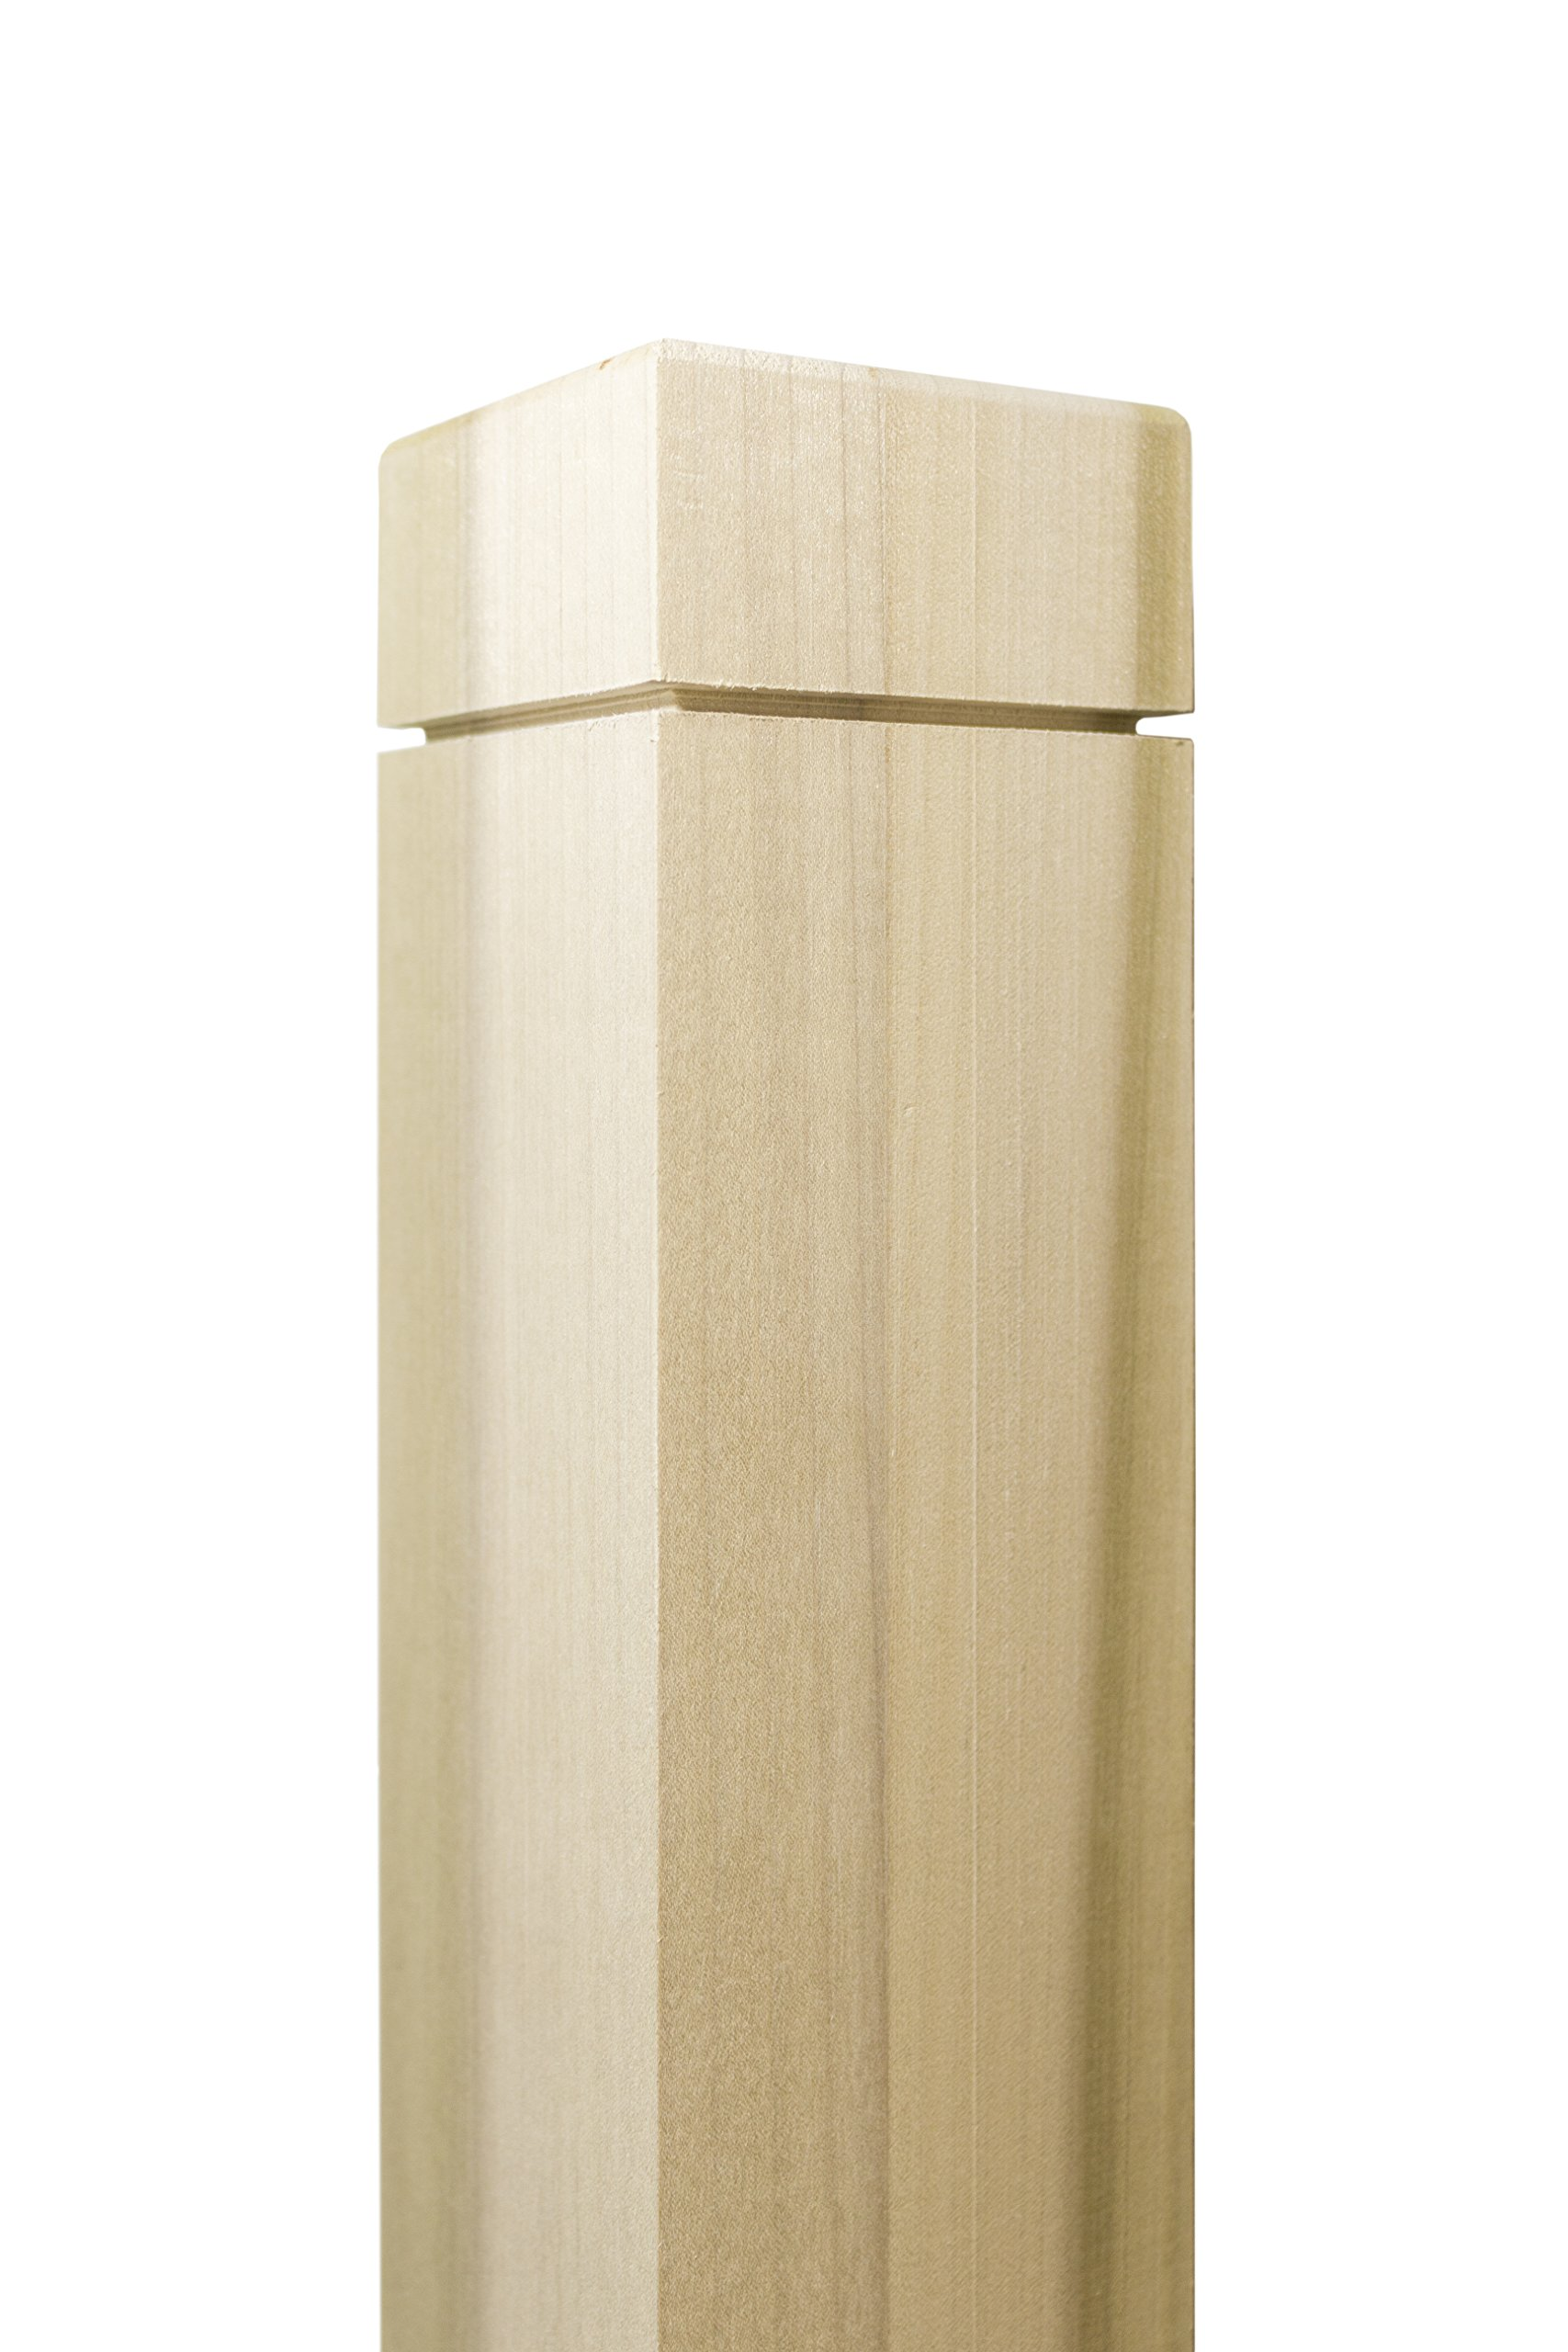 Notched Newel - 3'' x 48'' - Clean Routed Design - Paint-Grade (Poplar)